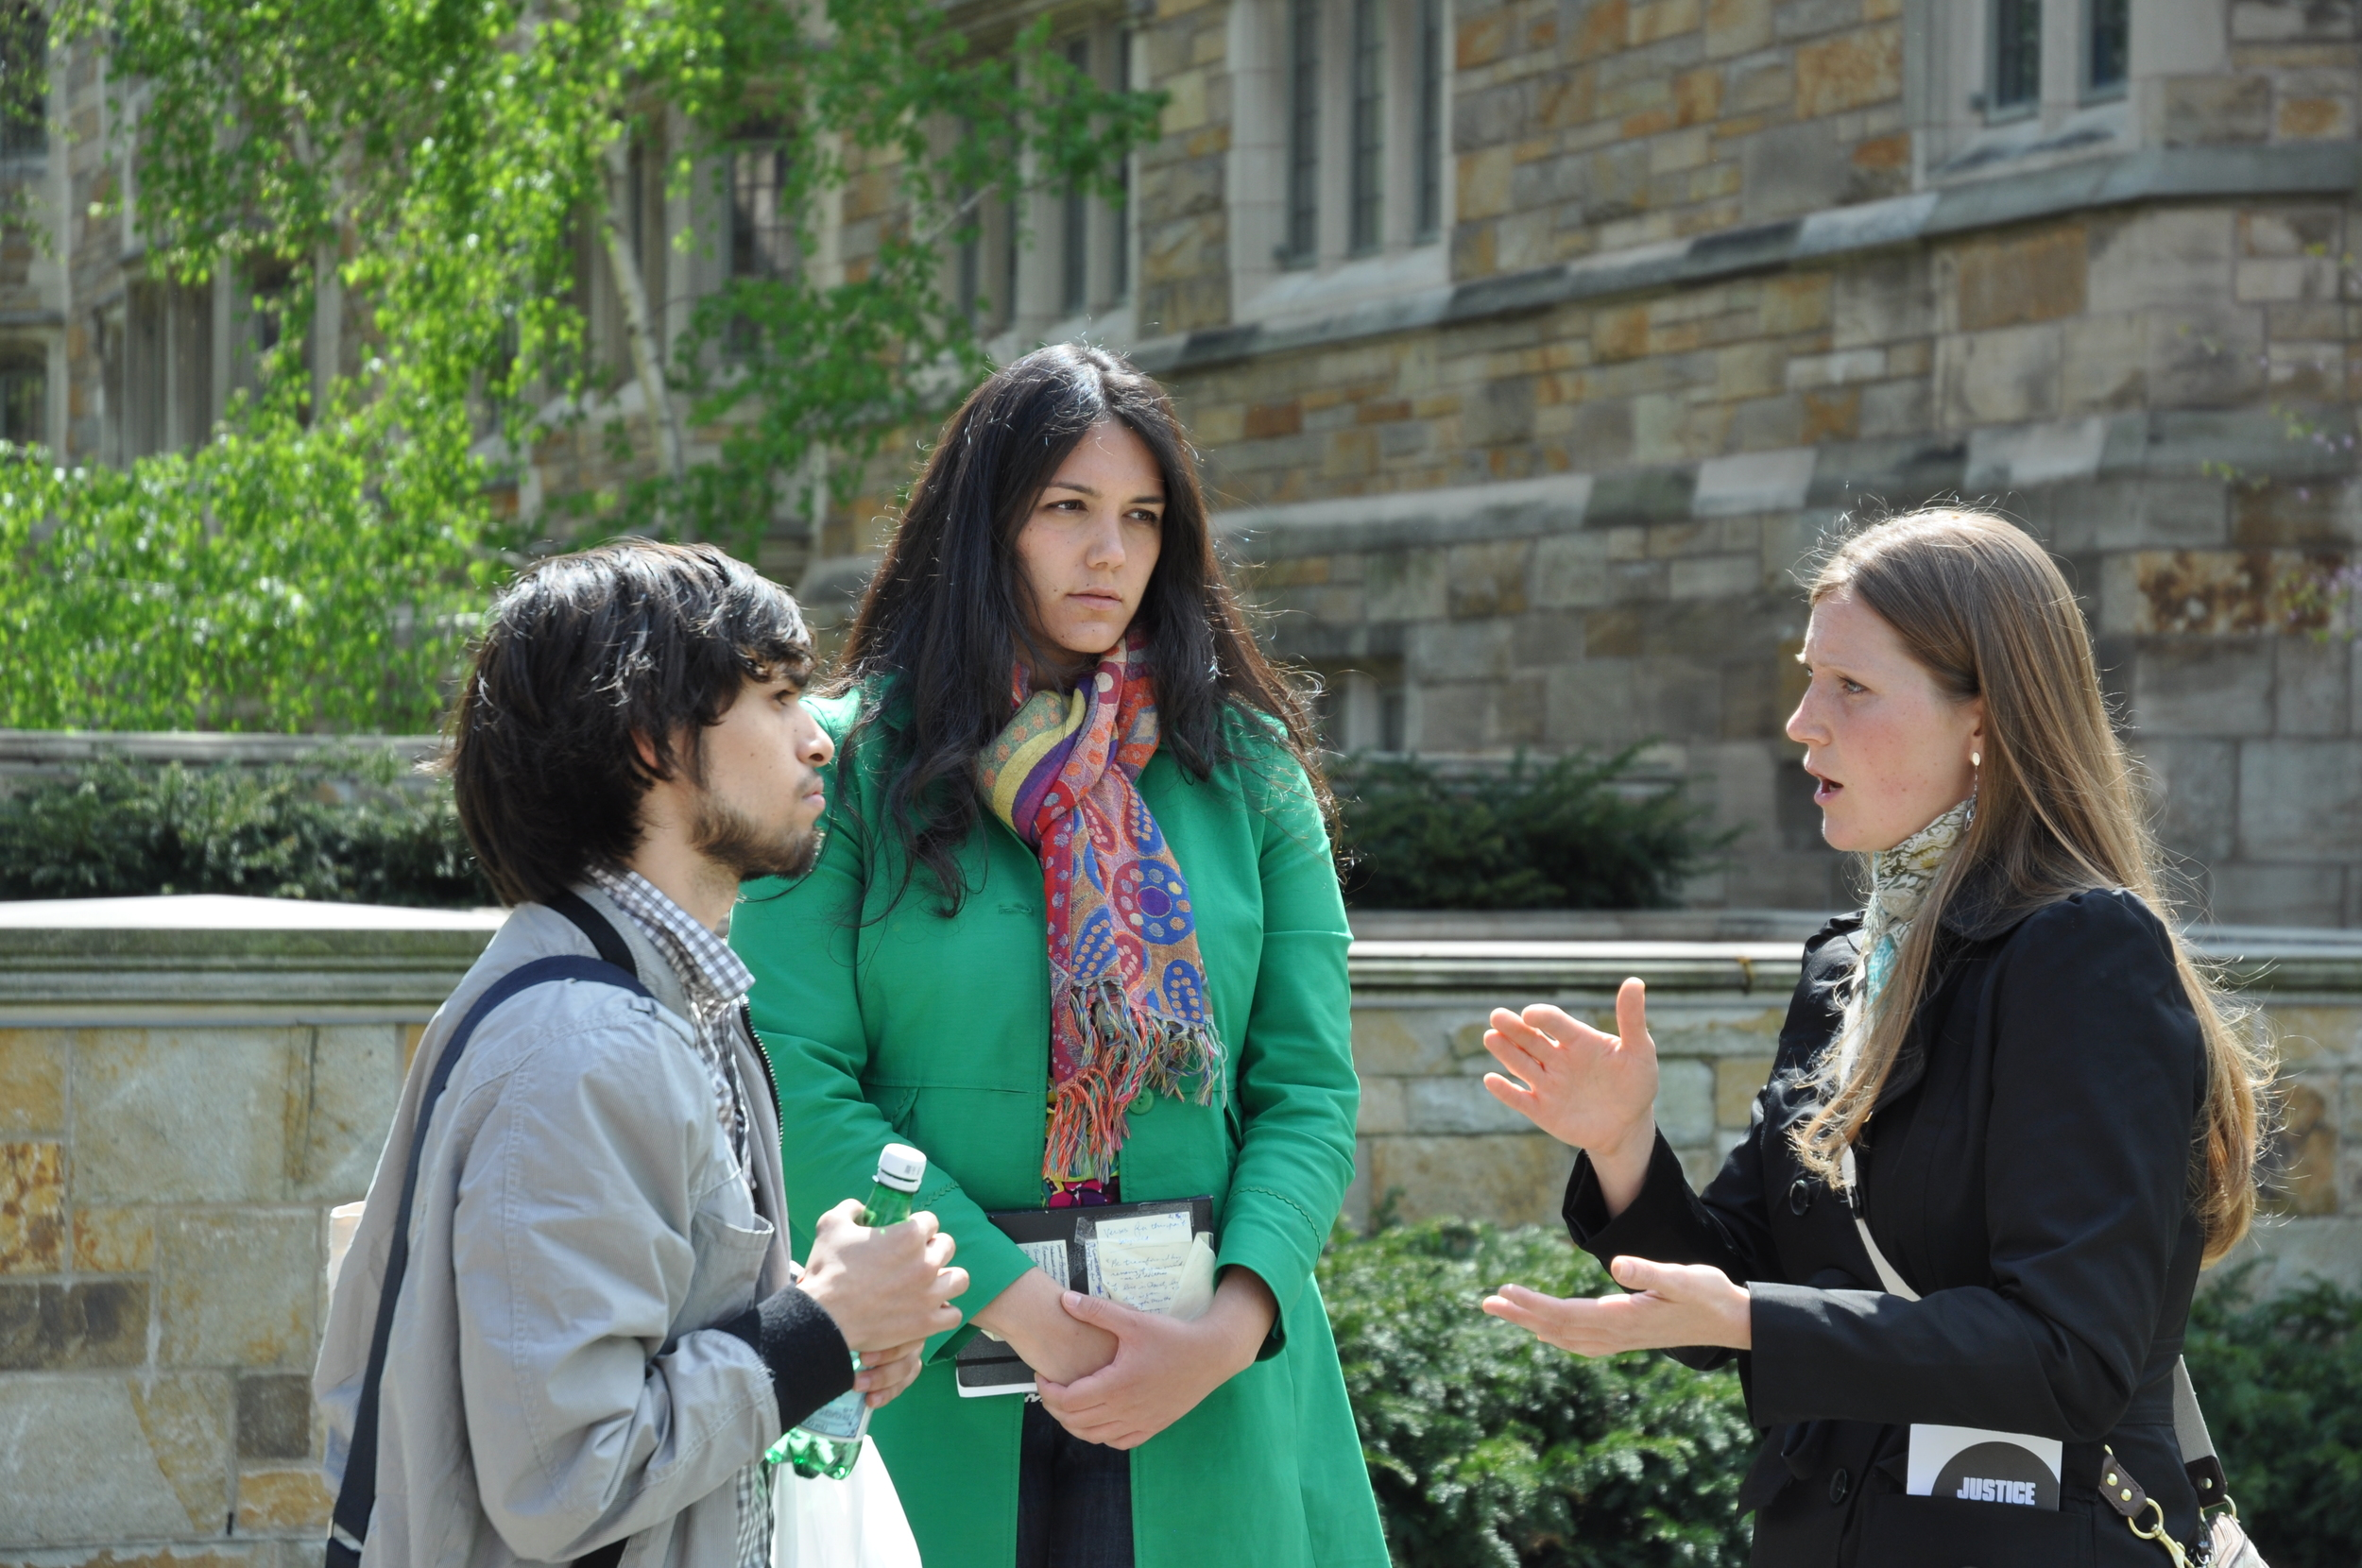 JFA volunteers Antionette (green) and Rachelle (black) interact with a student at Yale University in 2012.  Antionette now leads a pro-life ministry called  Mafgia .